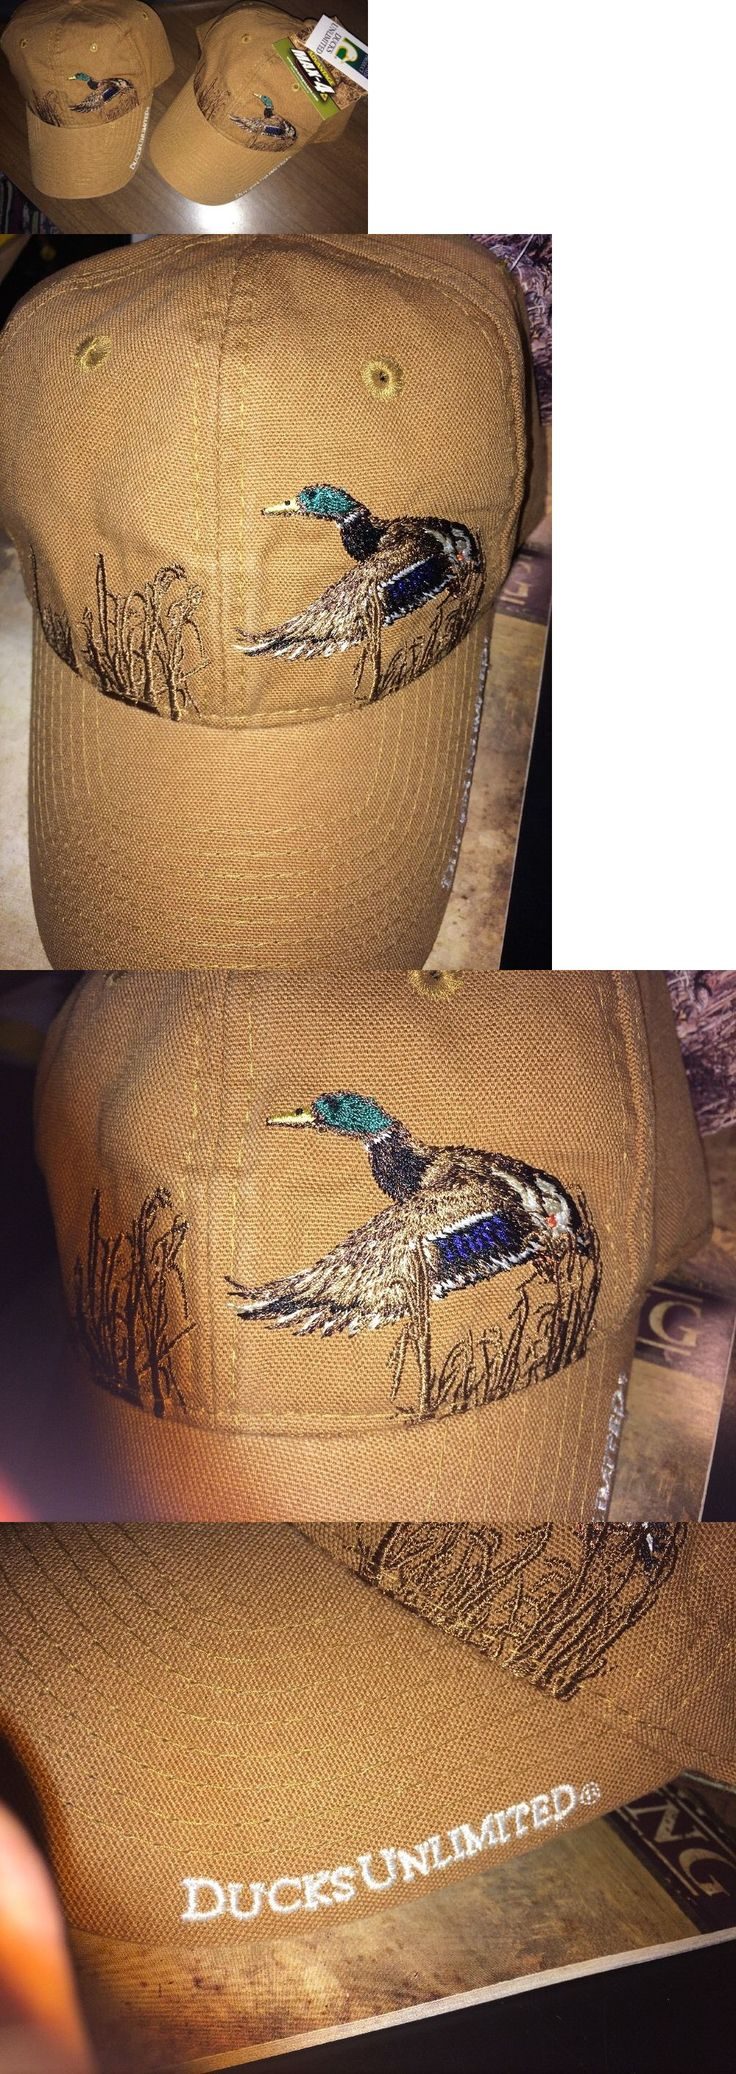 Hats and Headwear 159035: 2 Ducks Unlimited Hats Landing Mallard Marsh-Tan Cotton Canvas Max4 Undervisor BUY IT NOW ONLY: $48.96